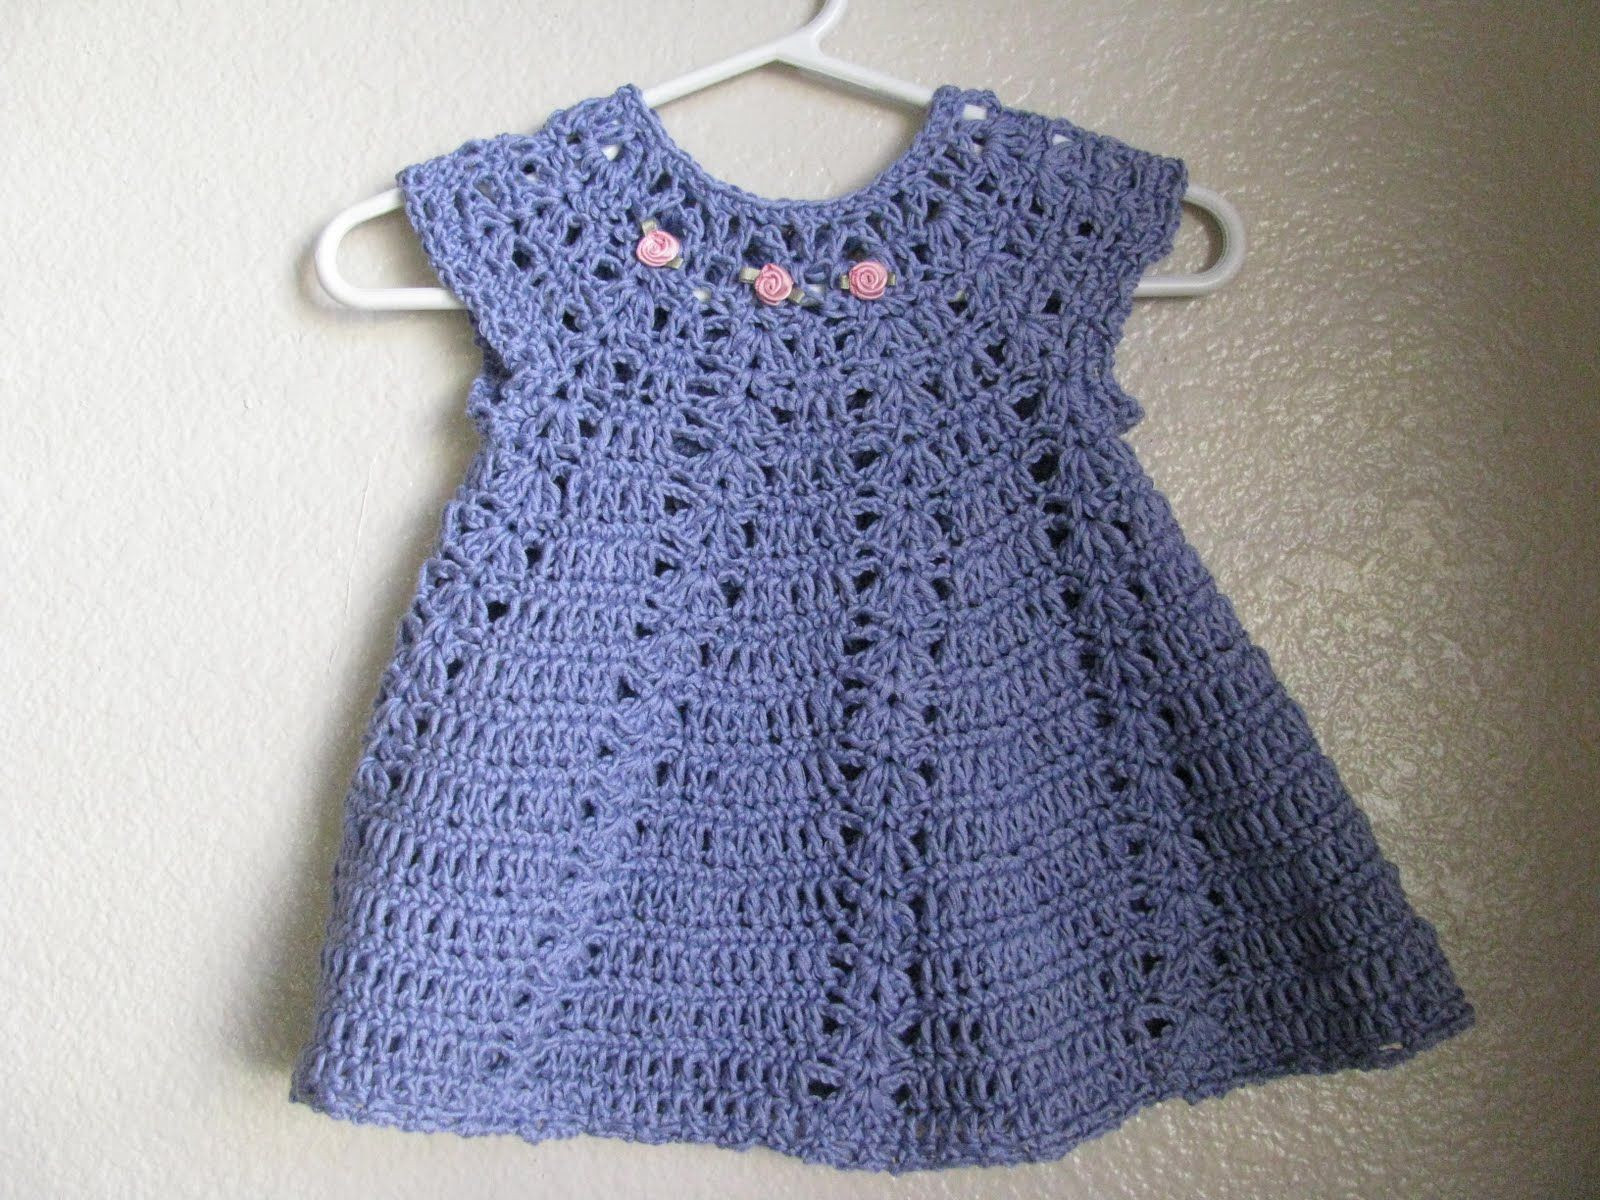 Free Crochet Patterns Baby Clothes Elegant Easy Crochet Baby Dress Of Awesome 40 Images Free Crochet Patterns Baby Clothes